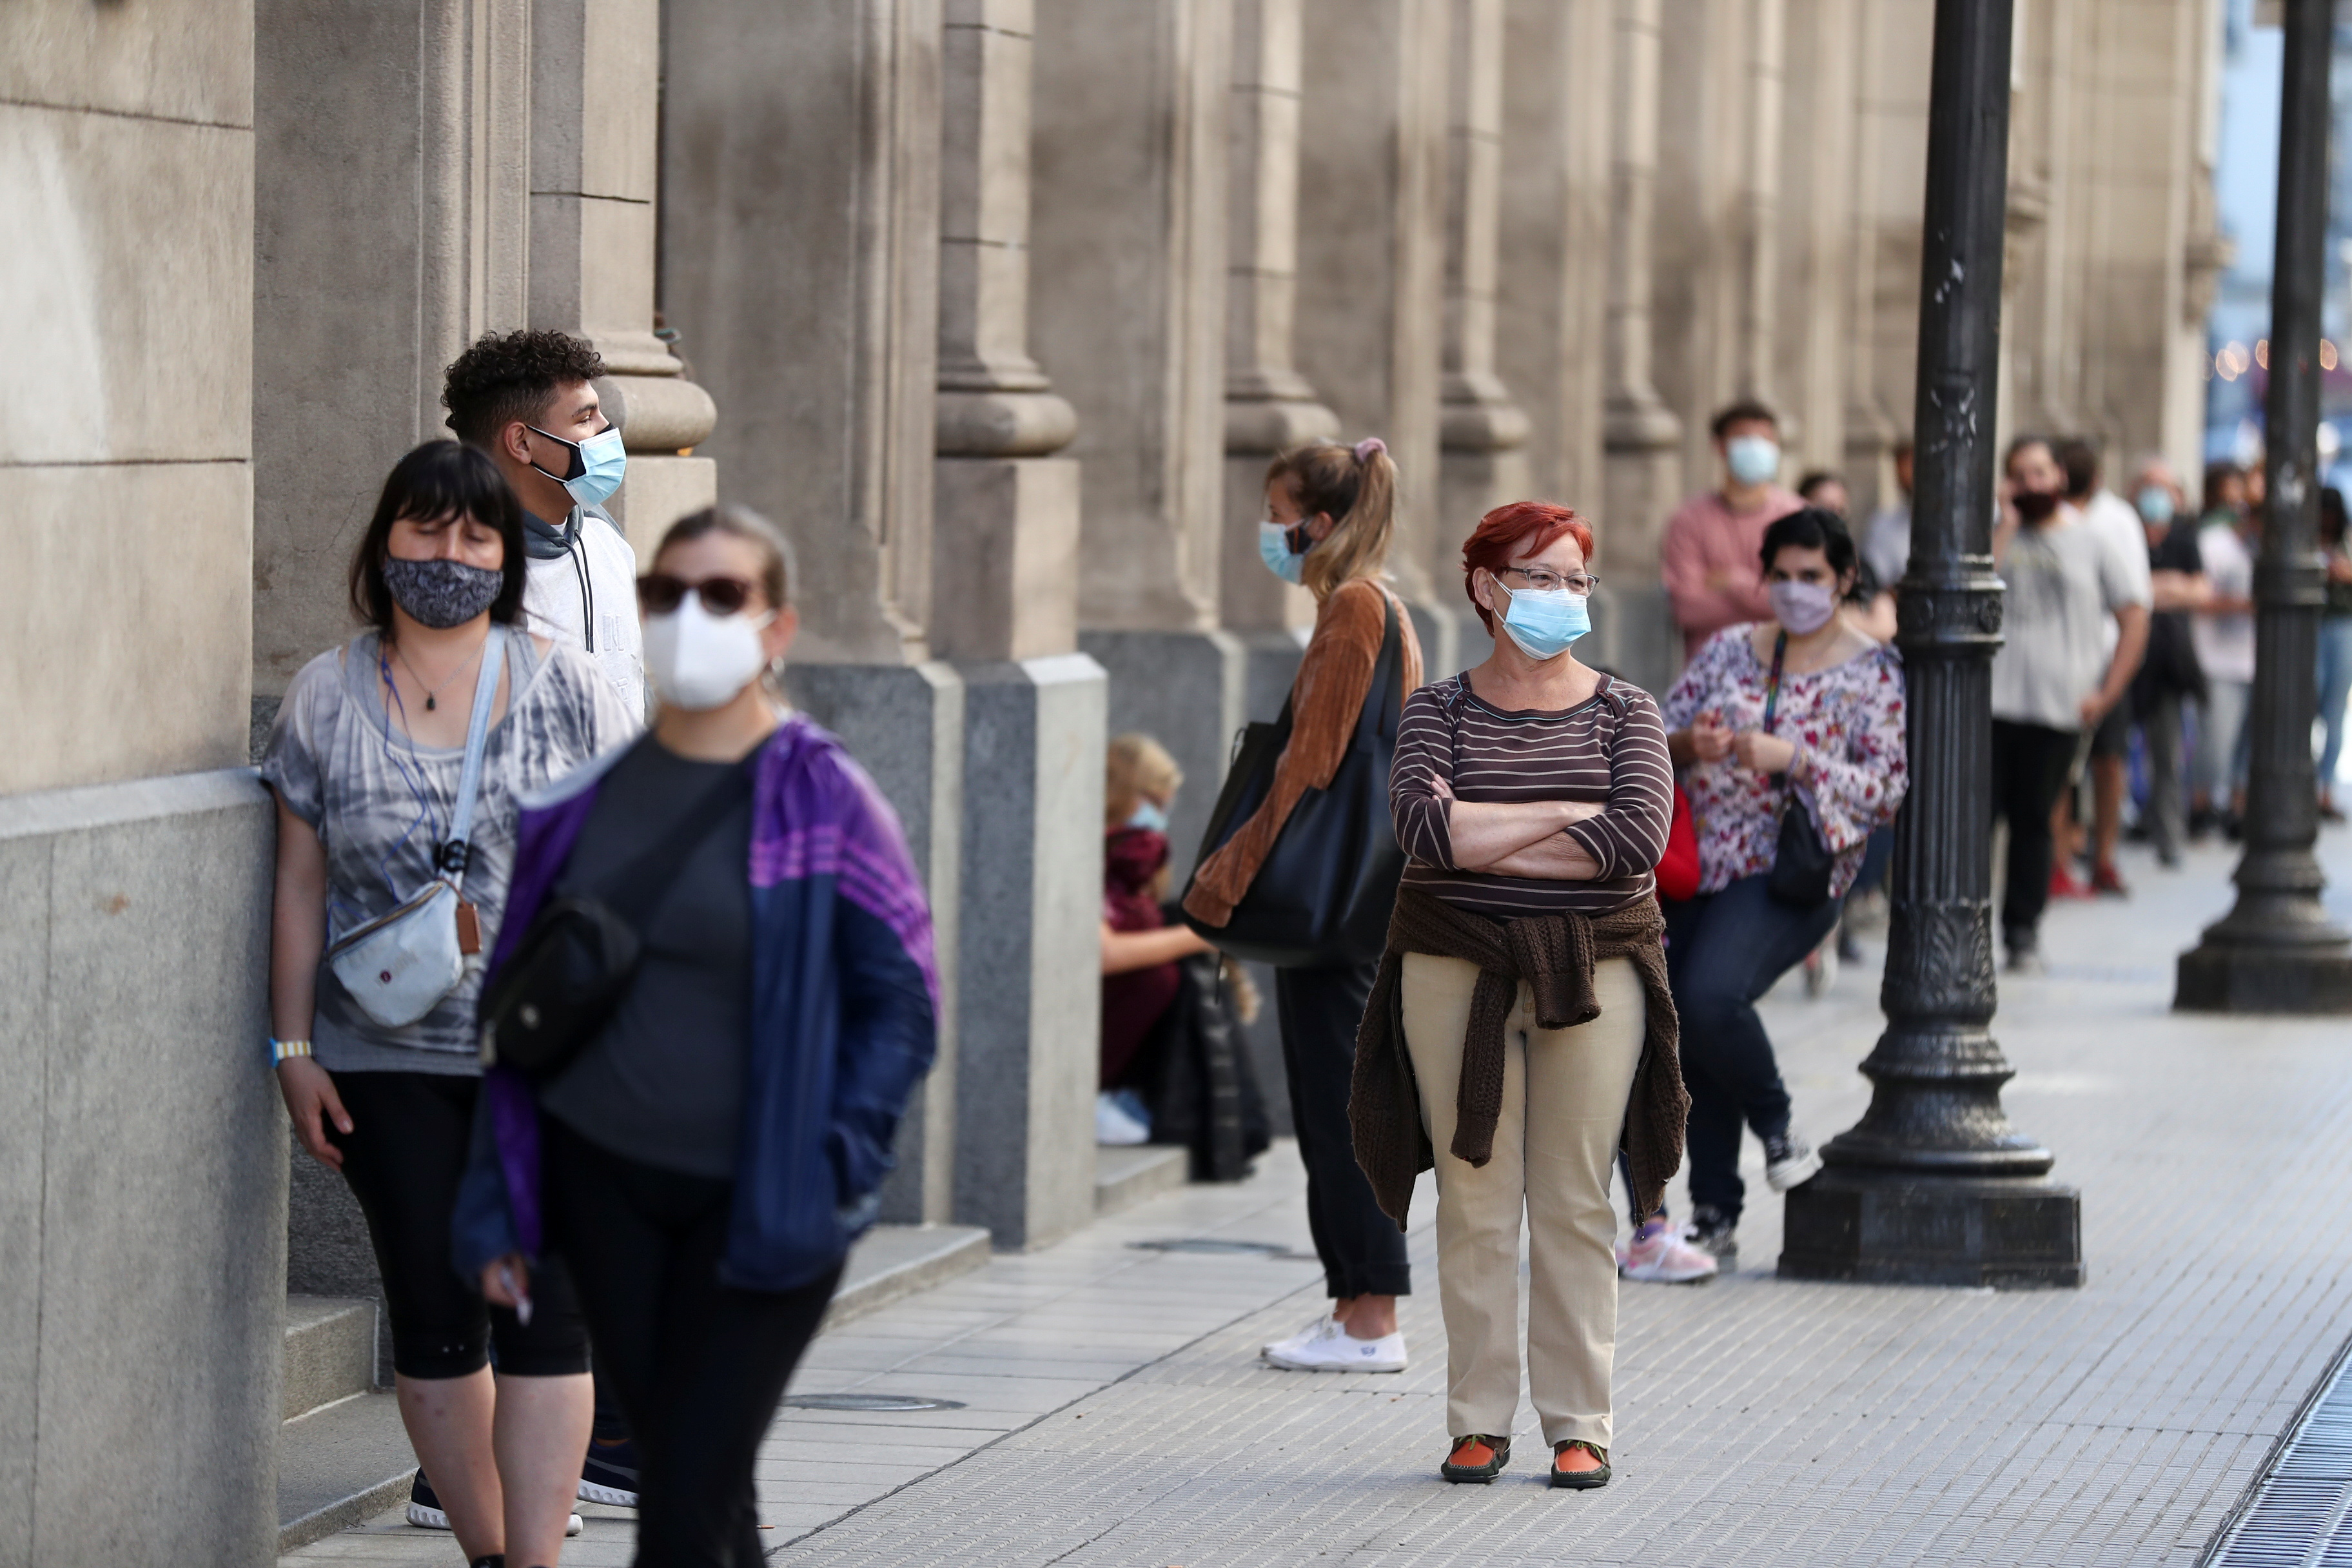 People wearing face masks wait in line to be tested for the coronavirus disease (COVID-19) at the Colon Theatre, in Buenos Aires, Argentina April 13, 2021. REUTERS/Agustin Marcarian